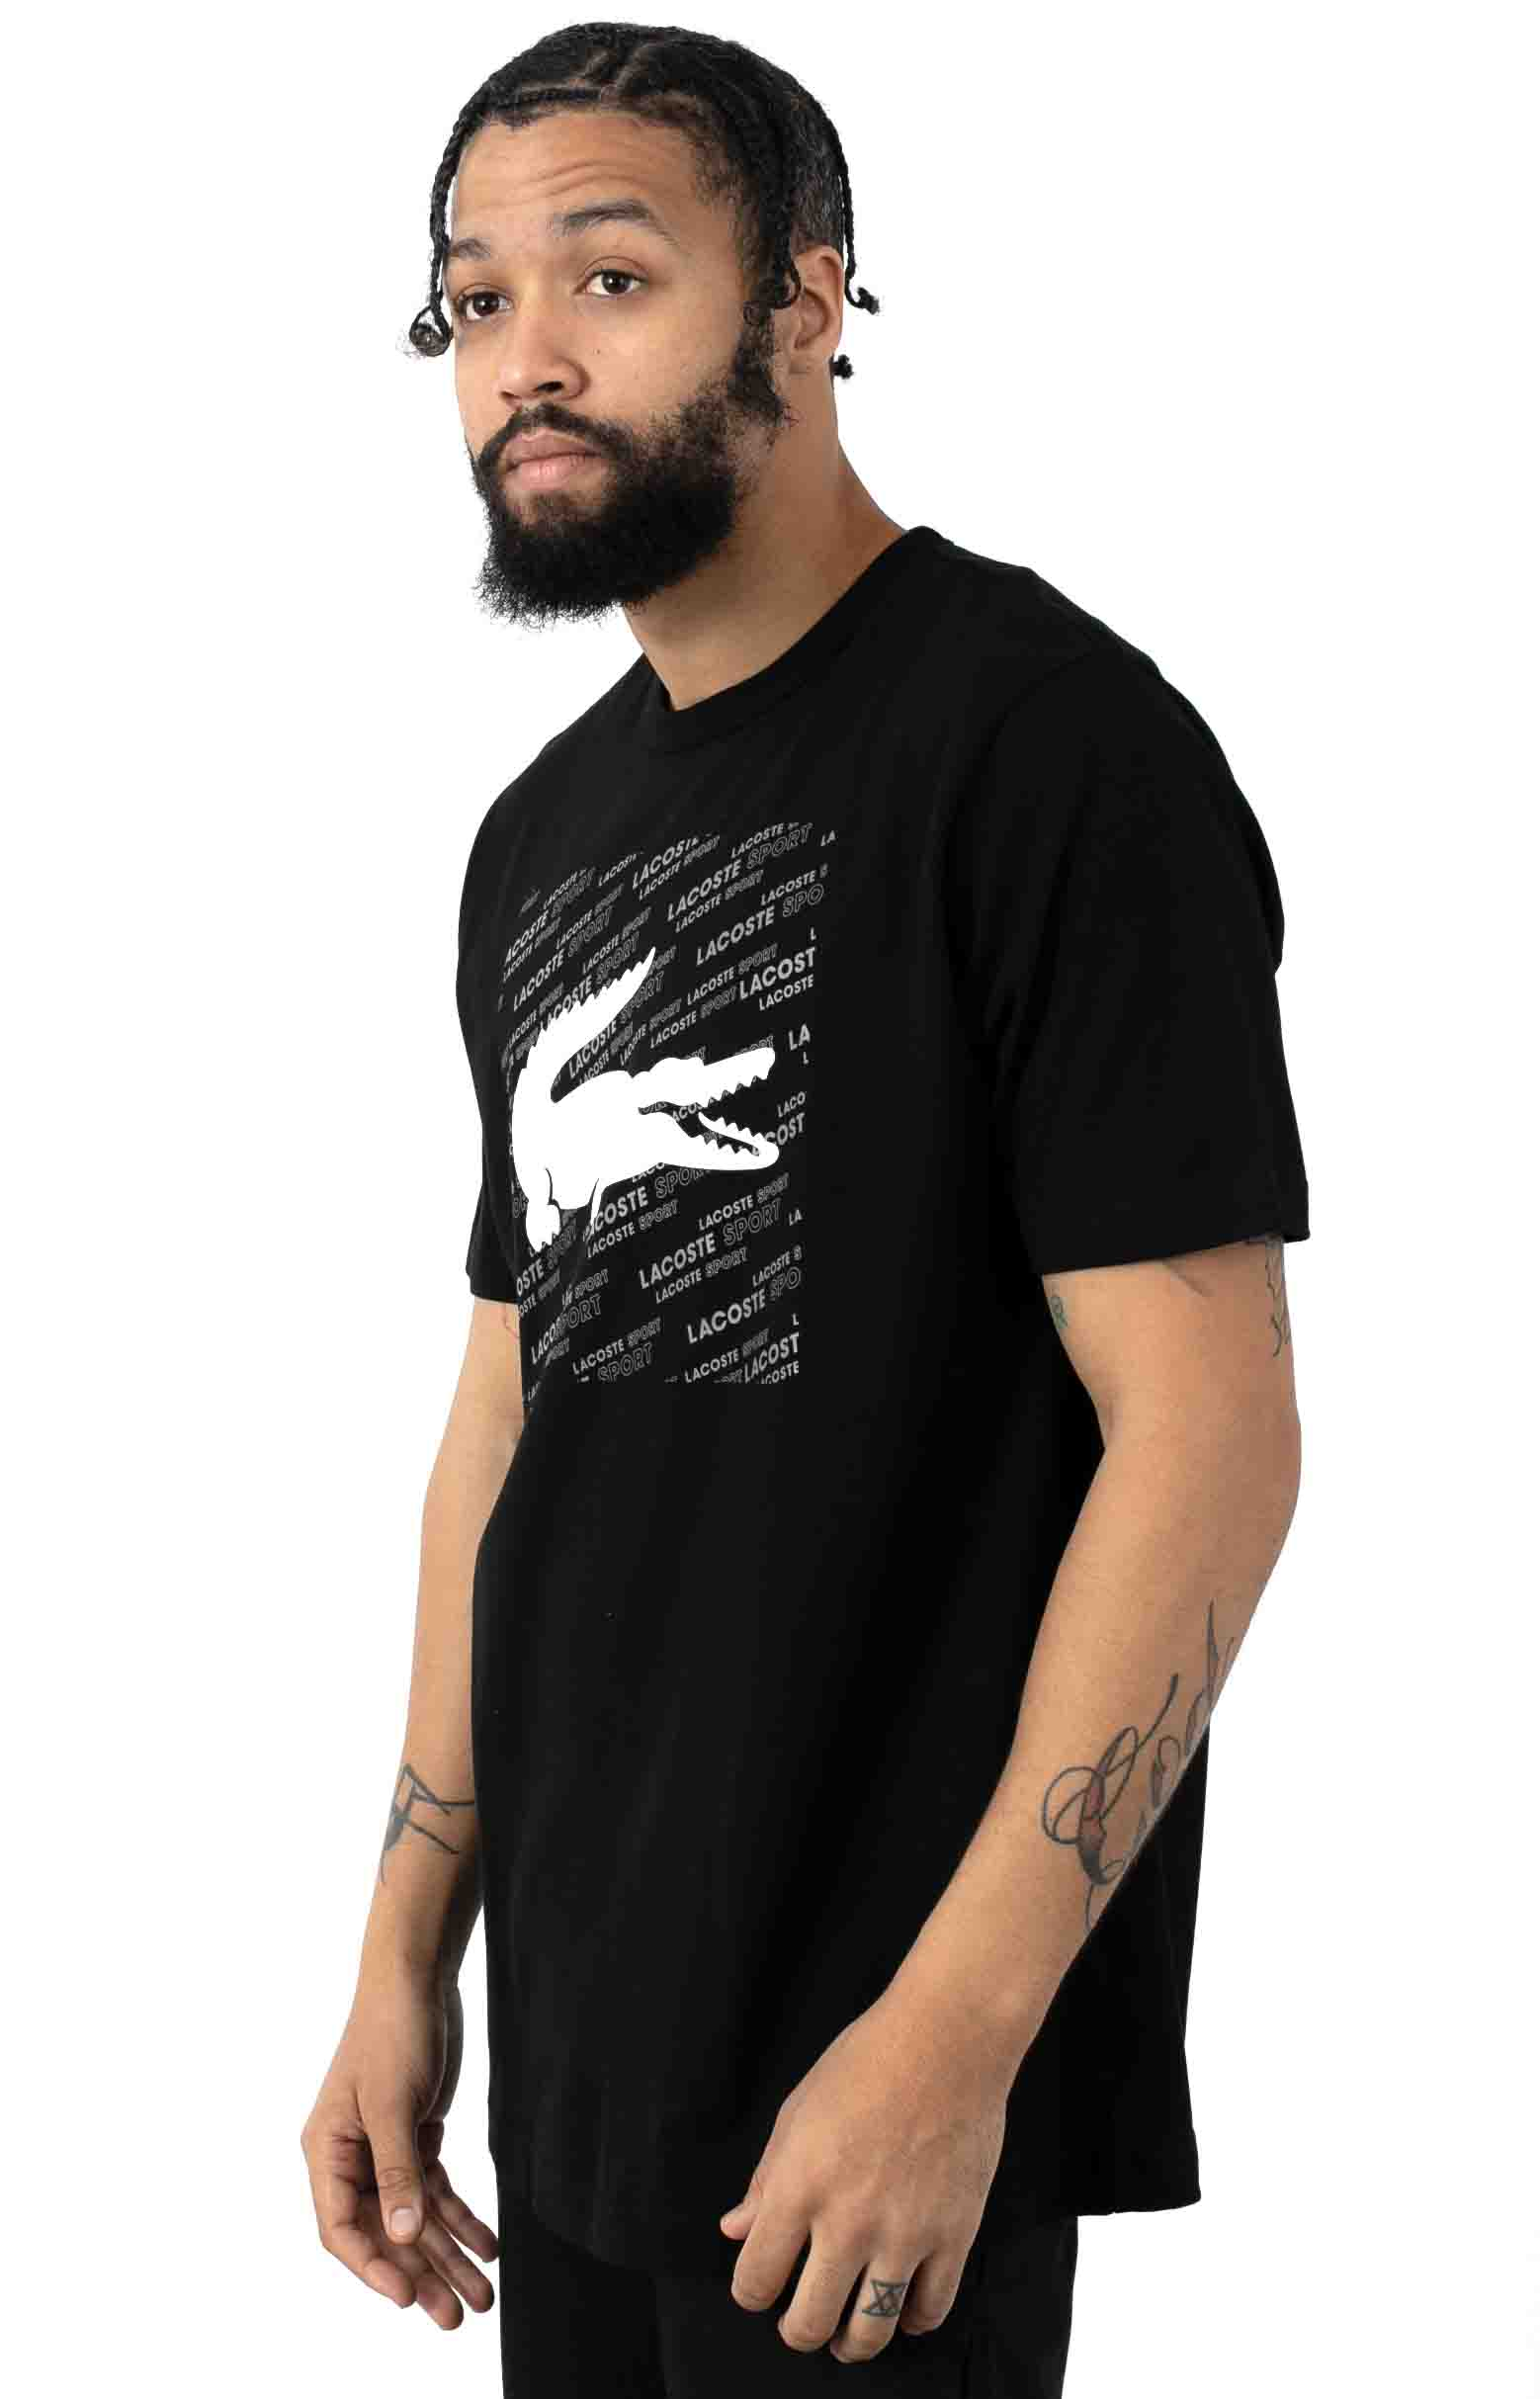 SPORT Reflective Logo-Print Cotton T-Shirt - Black/White 2